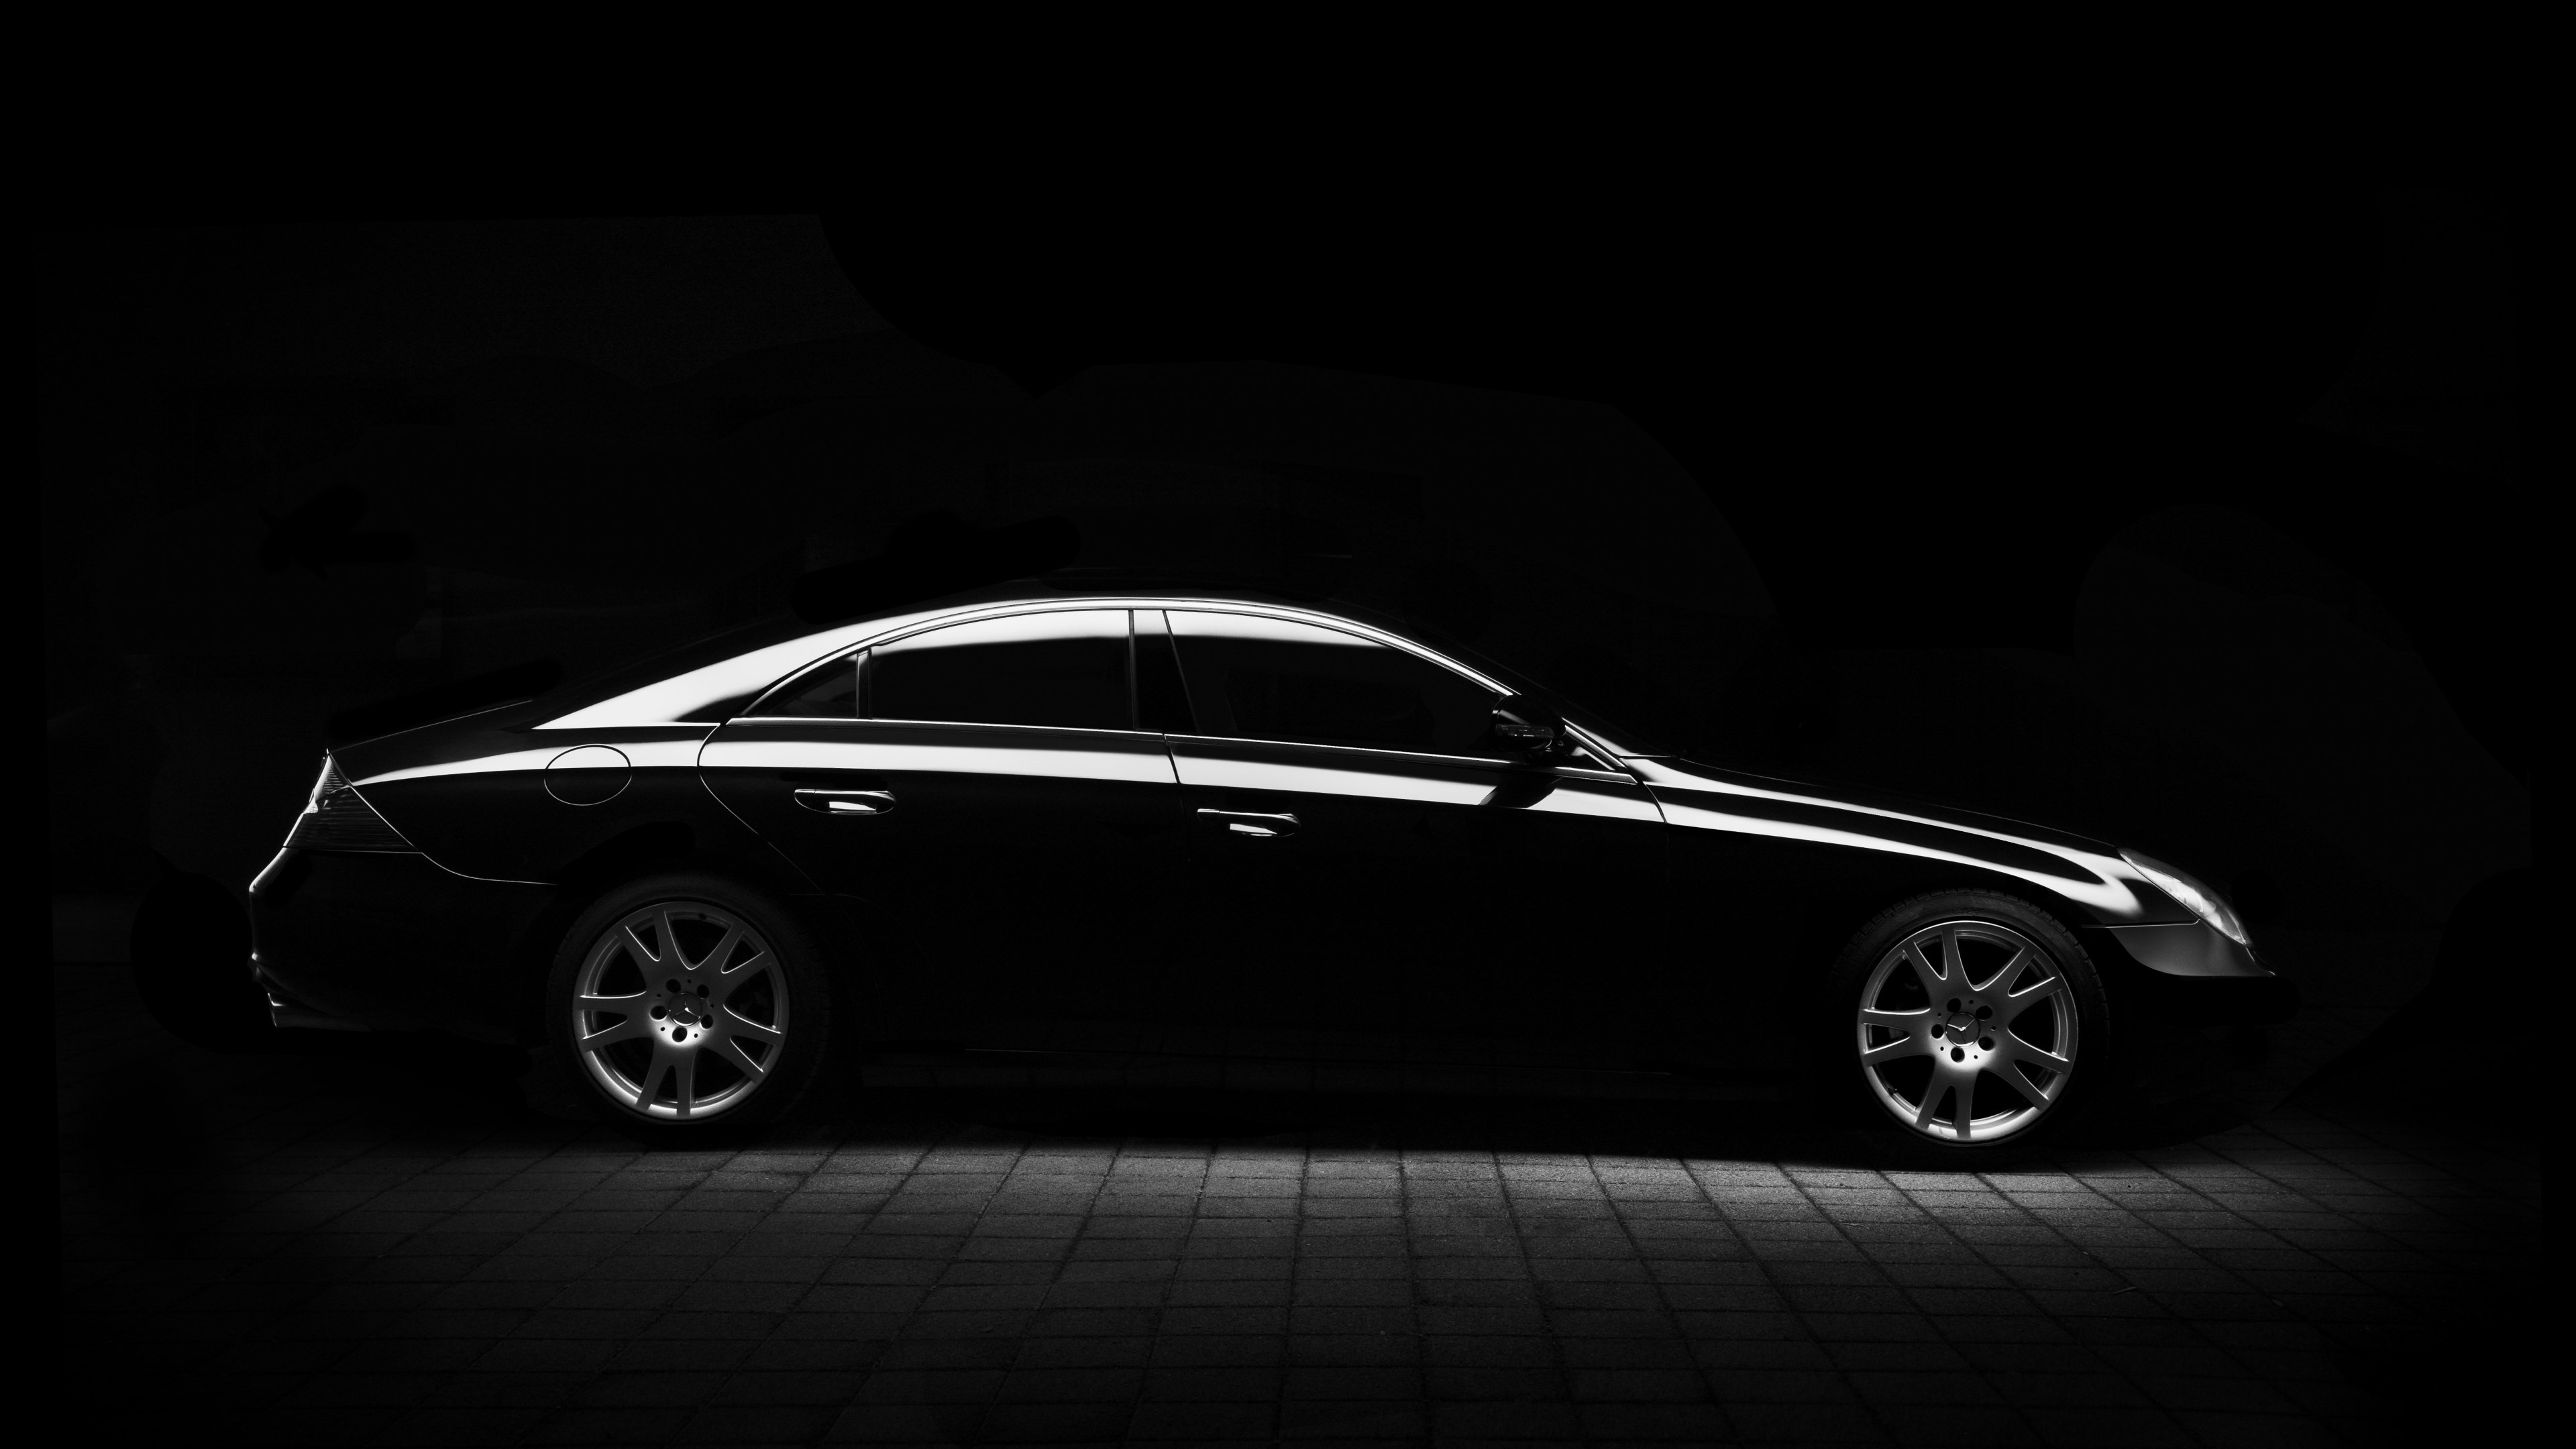 Silhouette of a Mercedes car | 3840x2160 wallpaper